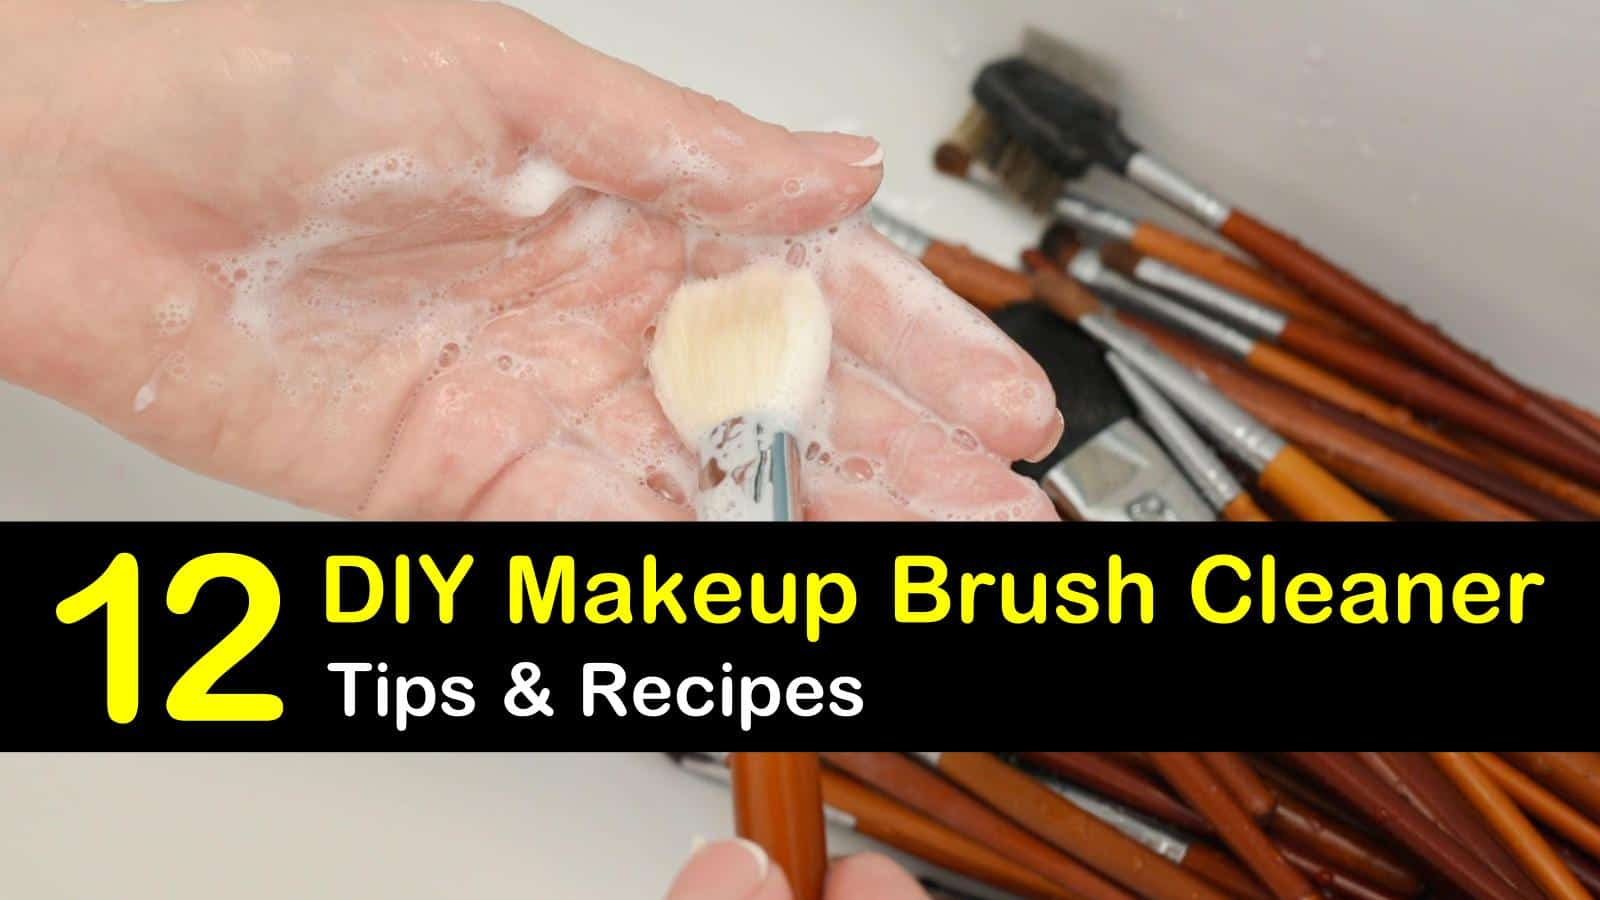 DIY Makeup Brush Cleaner Recipes: 12 Tips For Cleaning Your Makeup Brushes